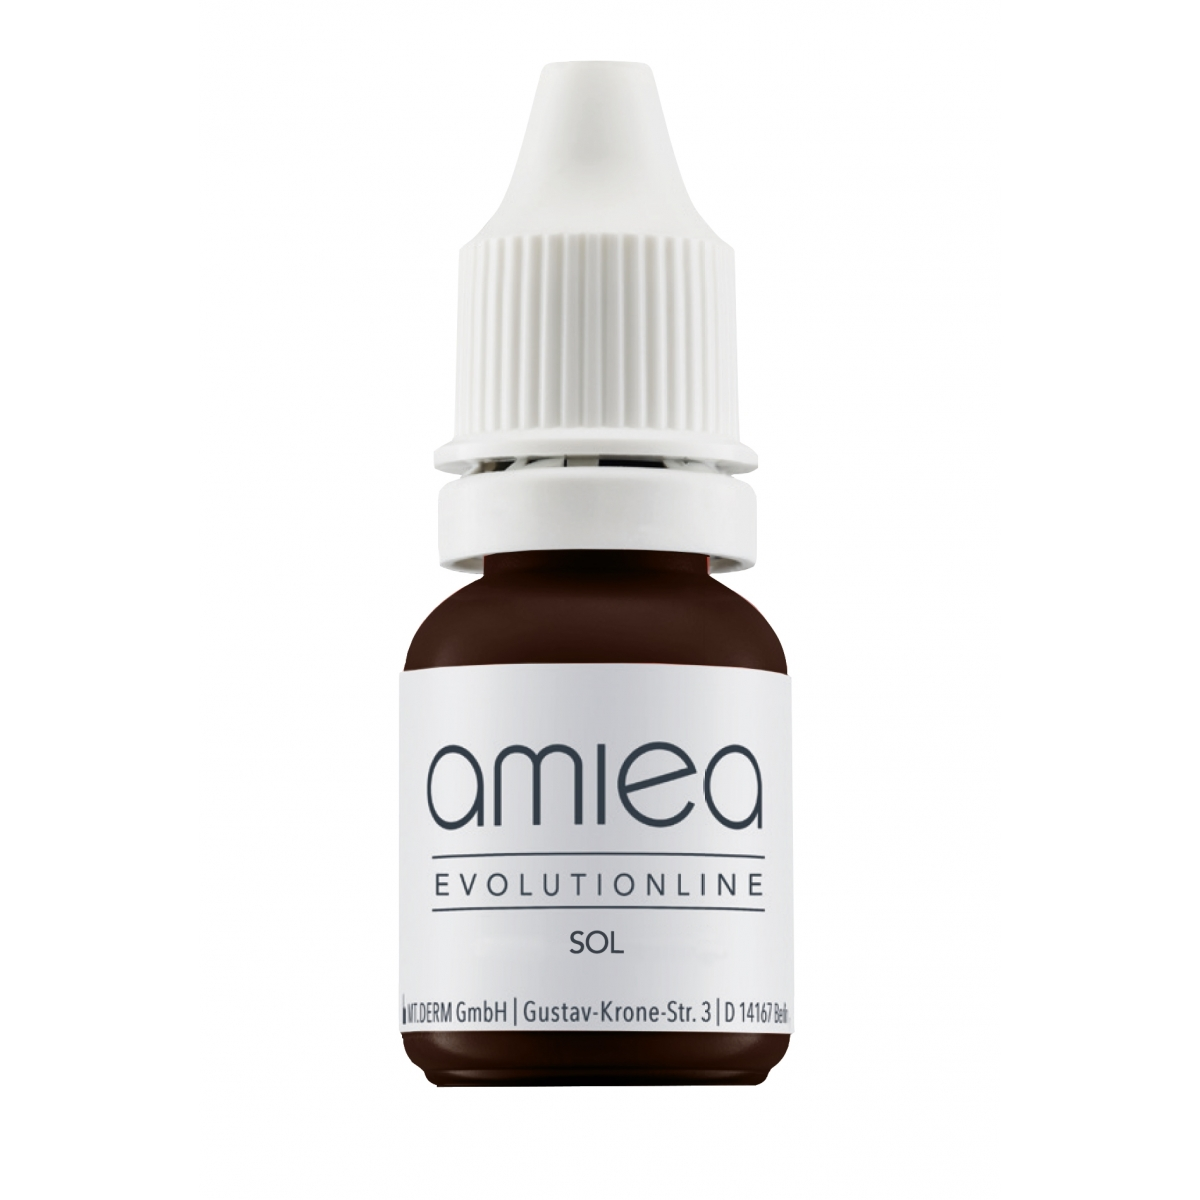 Evolutionline (10 ml) - PIGMENTS AMIEA EVOLUTIONLINE SOL, 10 ml